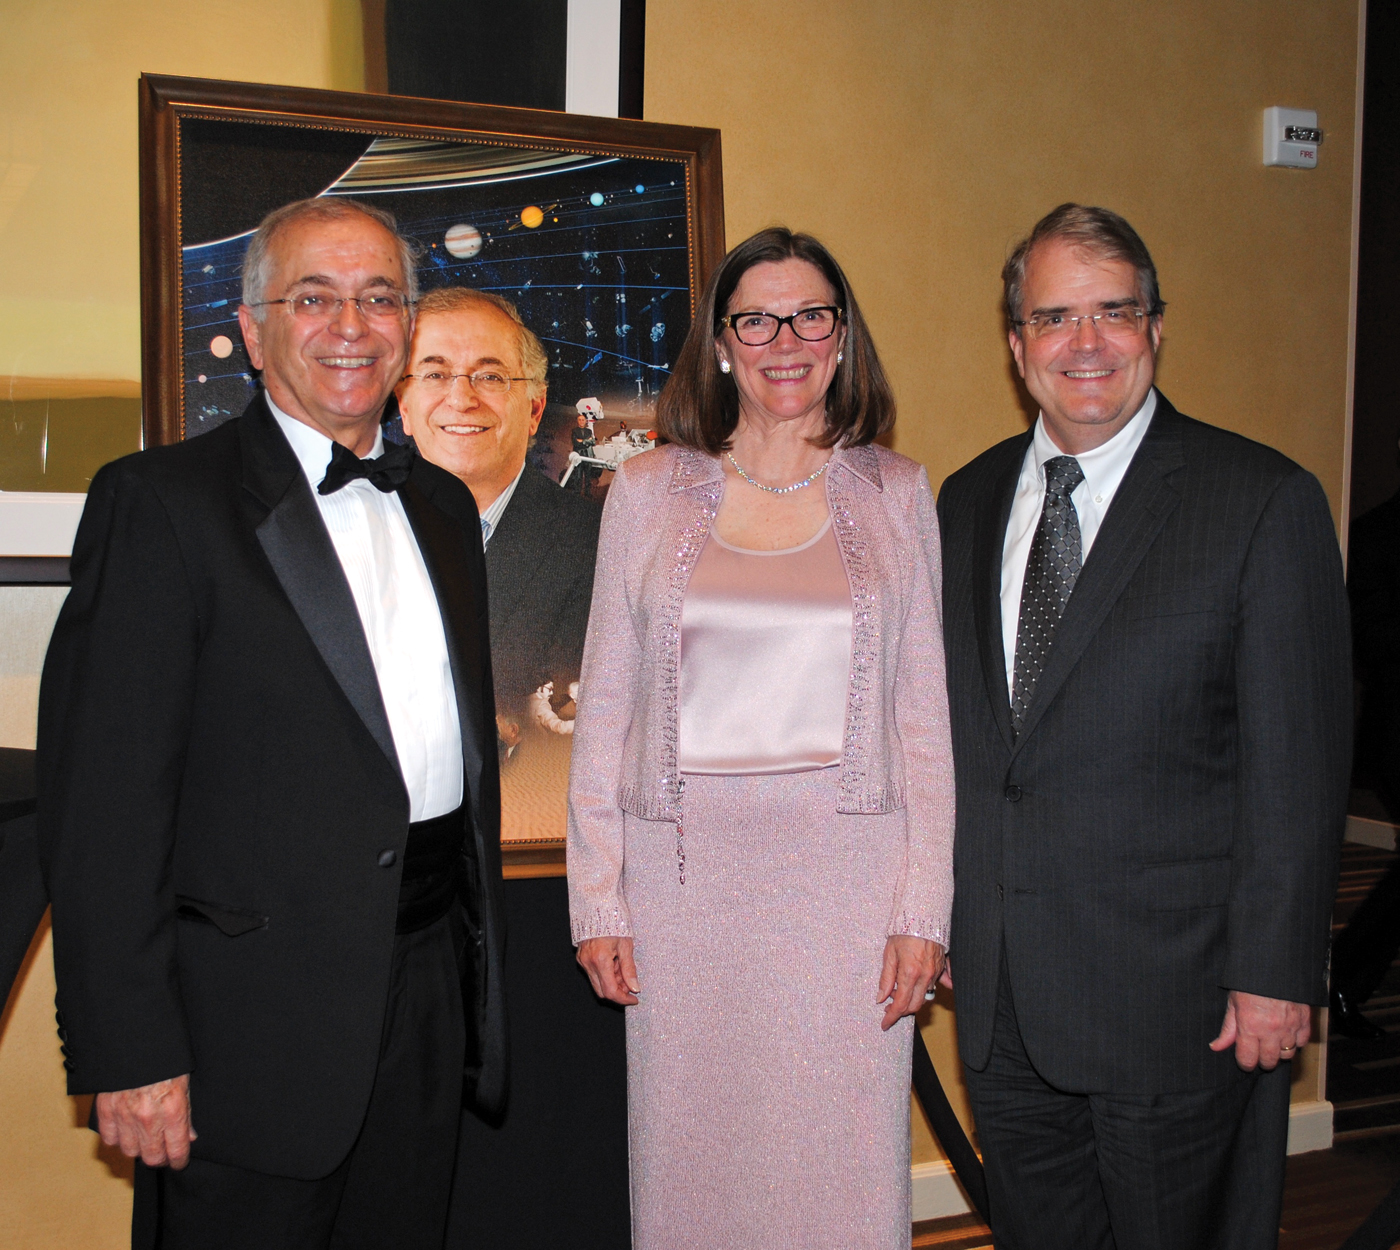 Space Trophy winner Dr. Charles Elachi and his wife, Valerie, left, receive congratulations from Texas Congressman John Culberson as they arrive at the Hyatt Regency for the Rotary Space Gala.